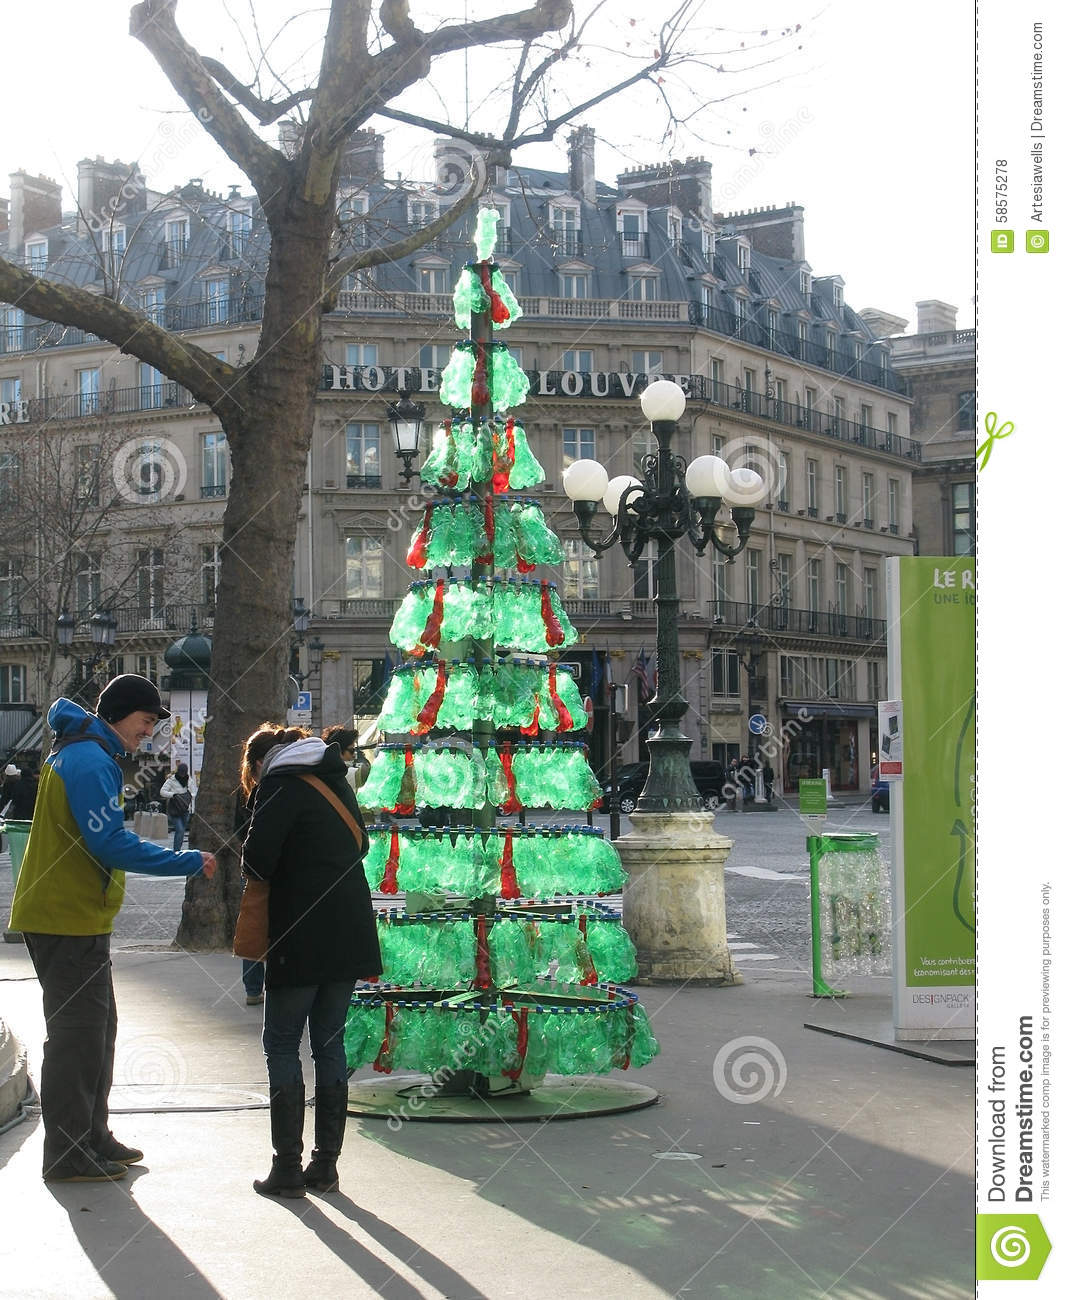 Recycled Plastic Christmas Tree: Recycling Editorial Stock Photo. Image Of Dawn, Christmas